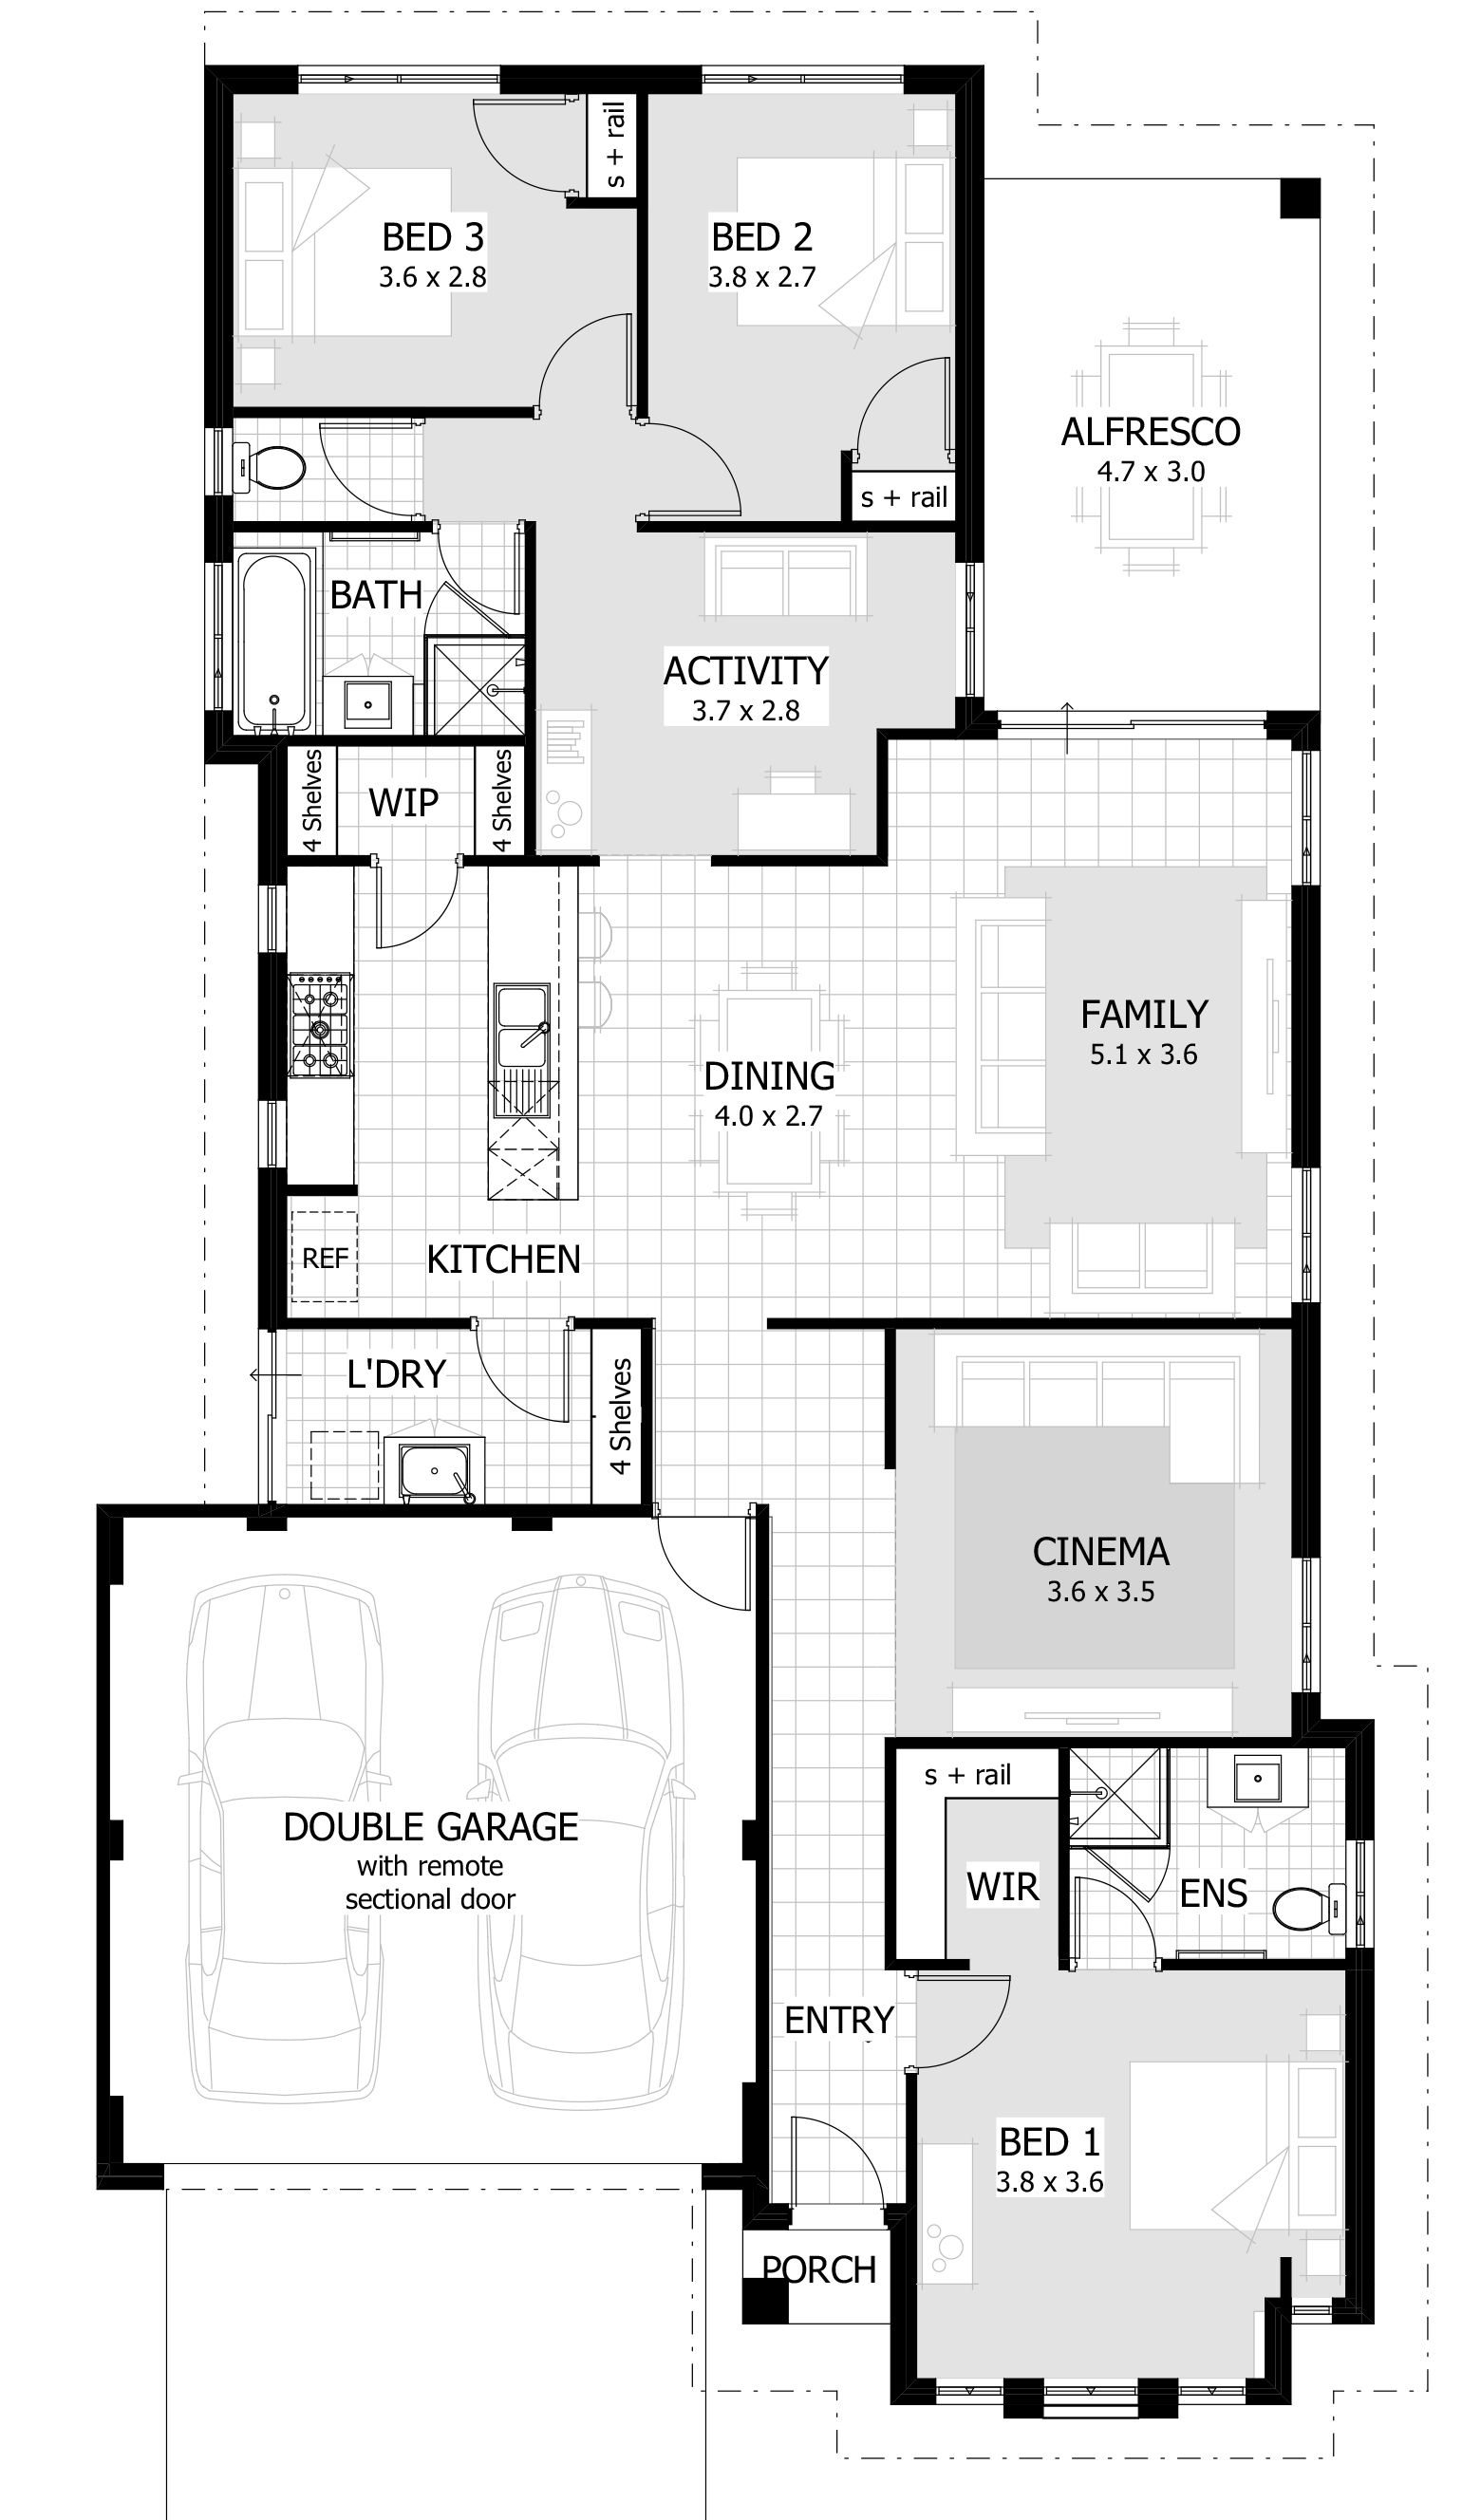 House Designs Perth New Single Storey Home Designs Single Storey House Plans Floor Plan Design Bedroom House Plans